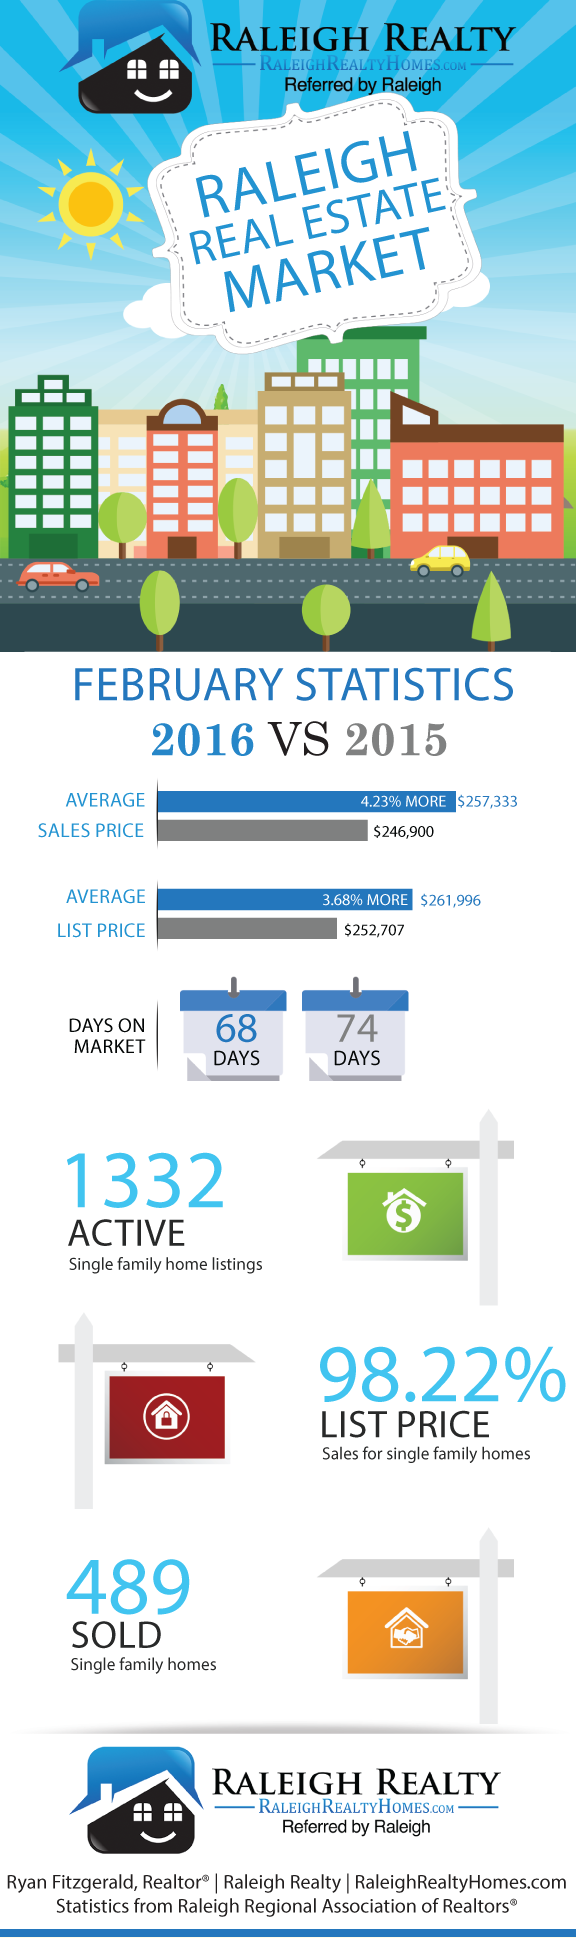 Raleigh Real Estate February 2016 Statistics Infographic